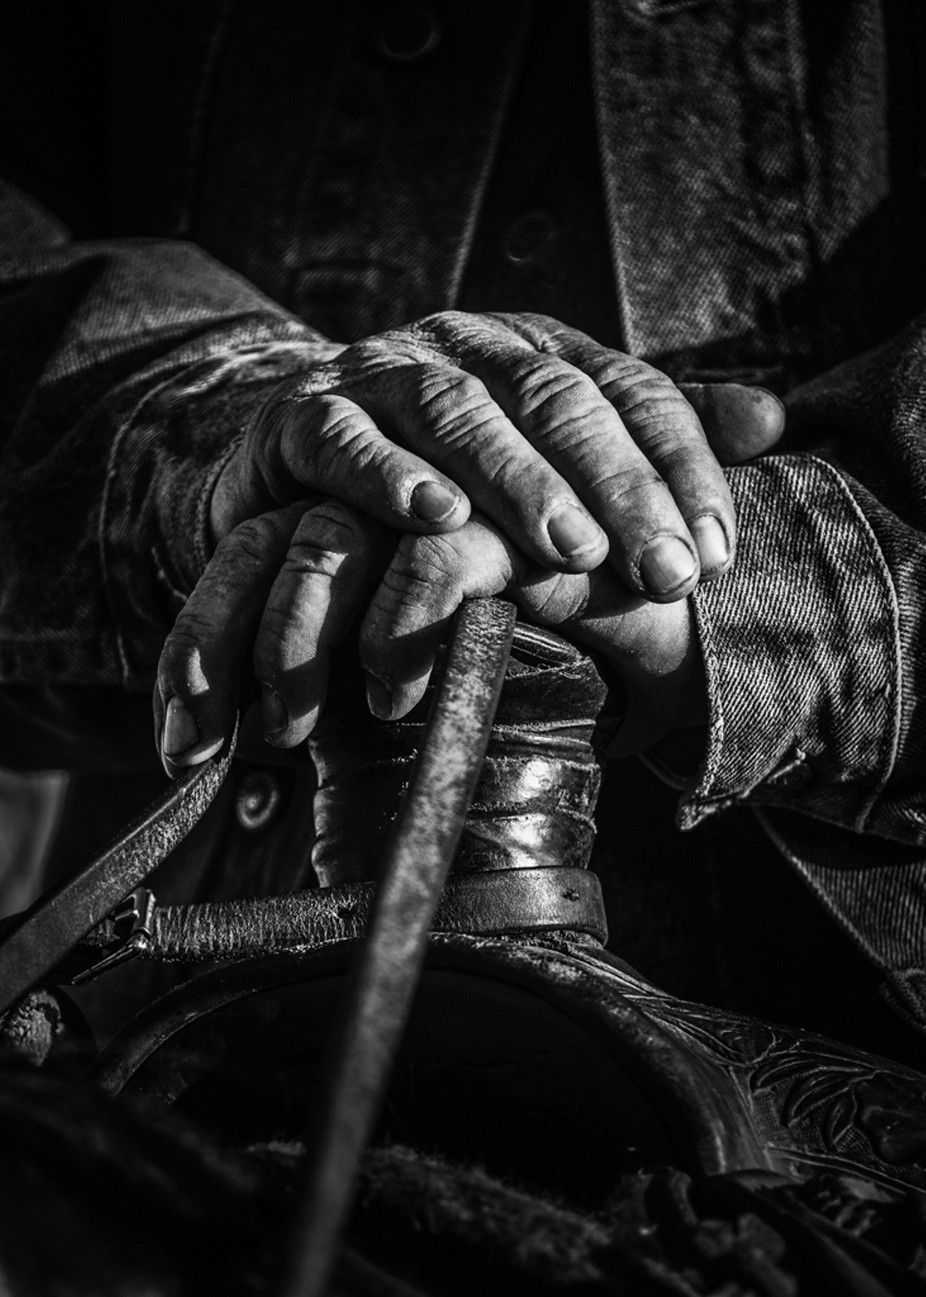 Cowboy hands by tadbrowning - Shooting Hands Photo Contest